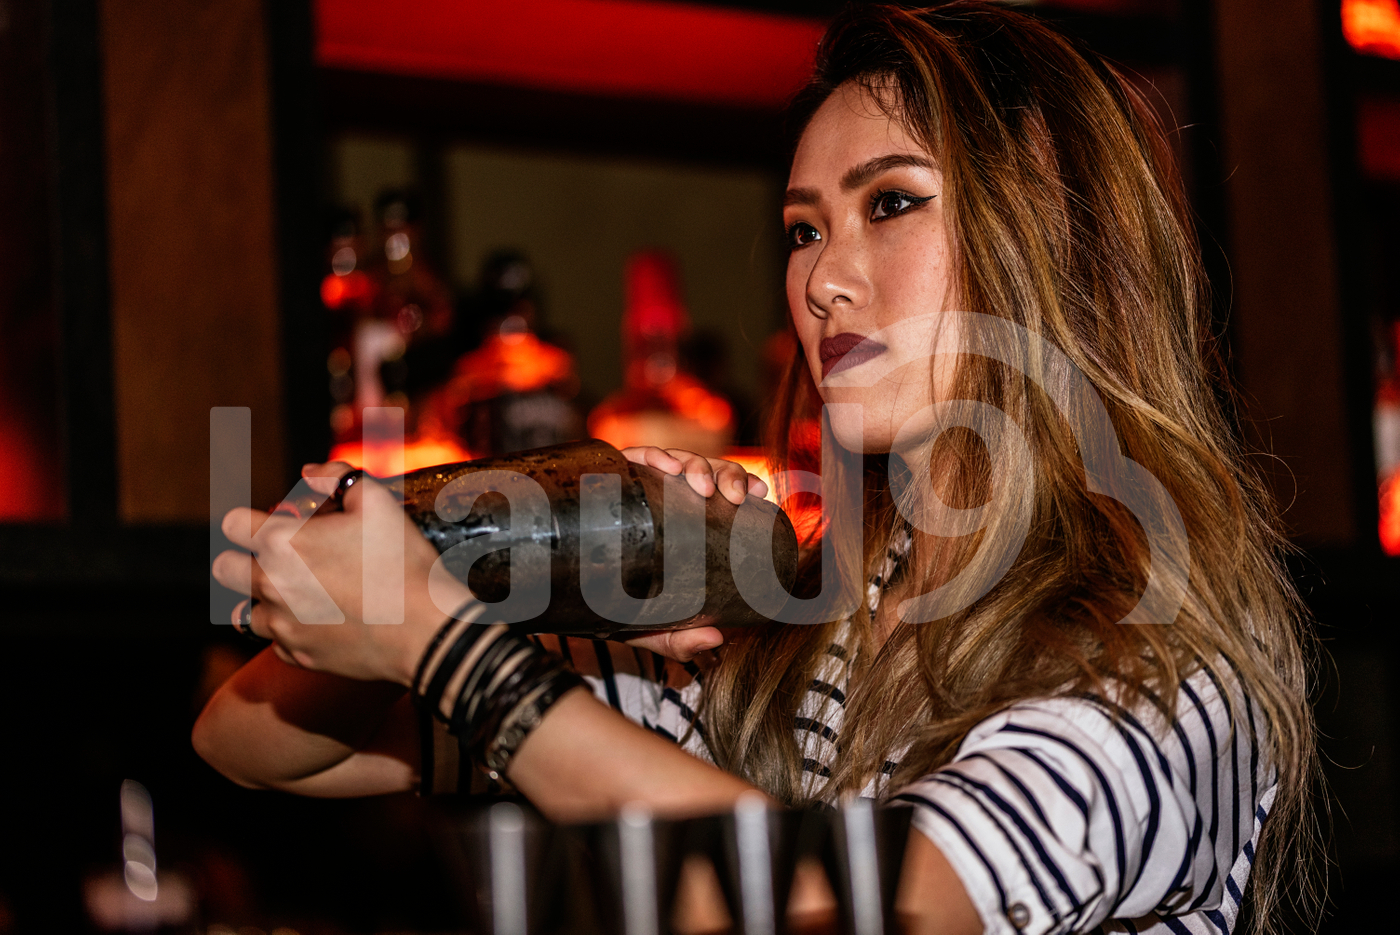 Female Asian bartender mixing drink using shaker